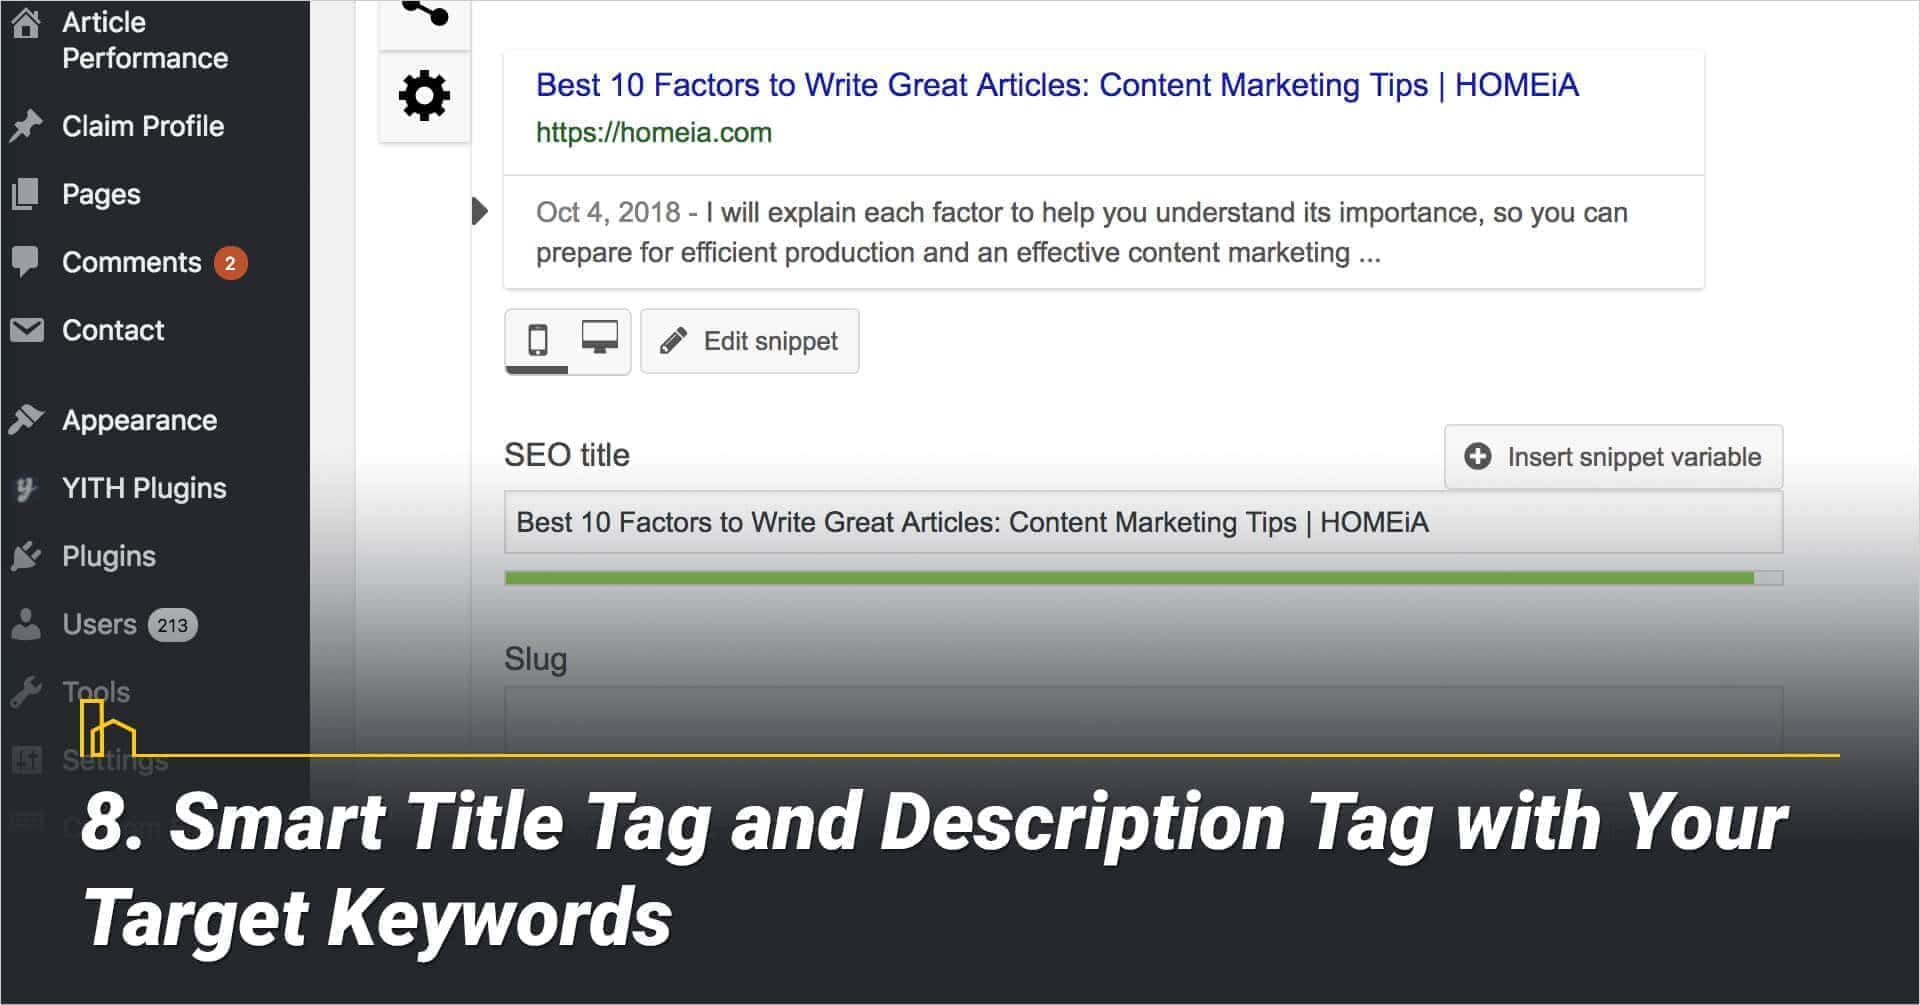 Smart Title Tag and Description Tag with Your Target Keywords